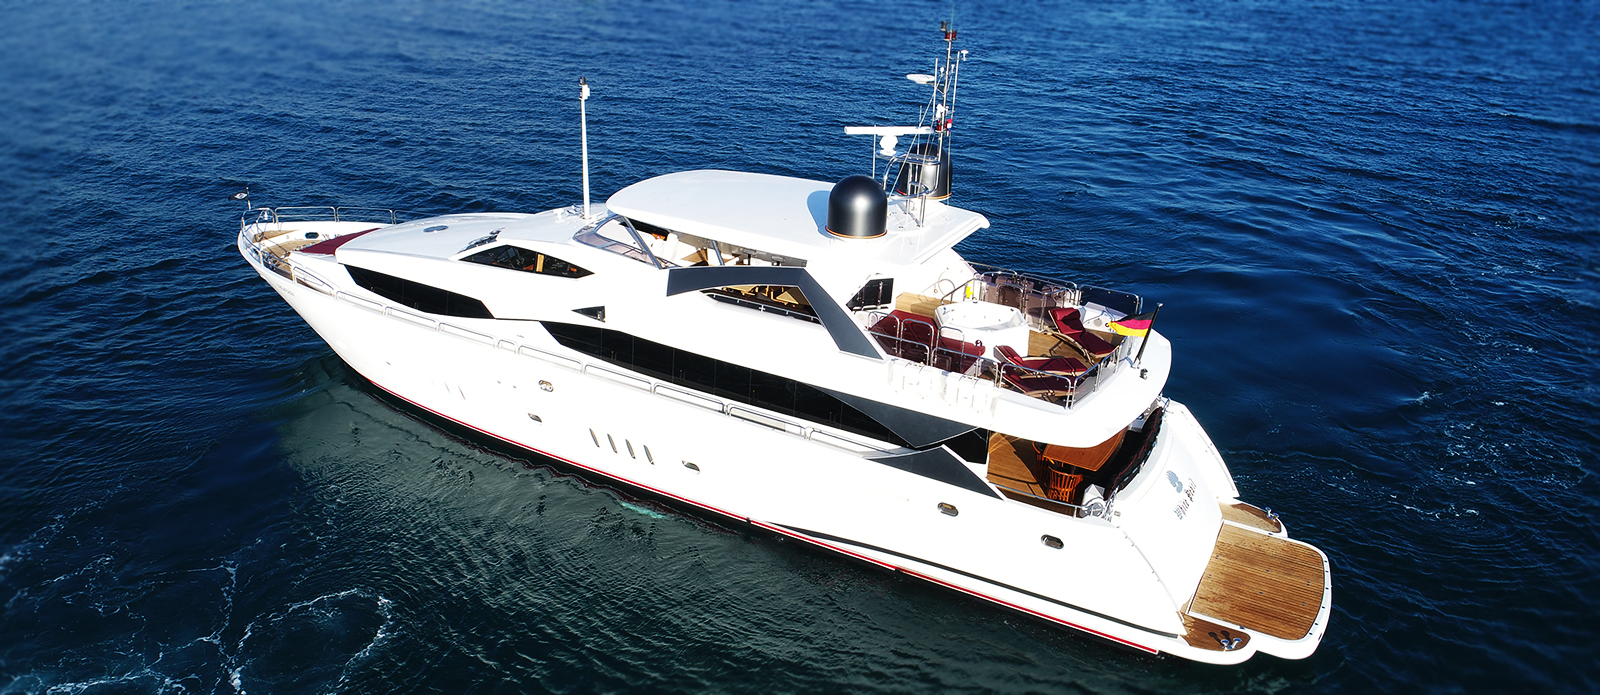 Sunseeker 34M Yacht For Sale Exclusively with Bristow-Holmes